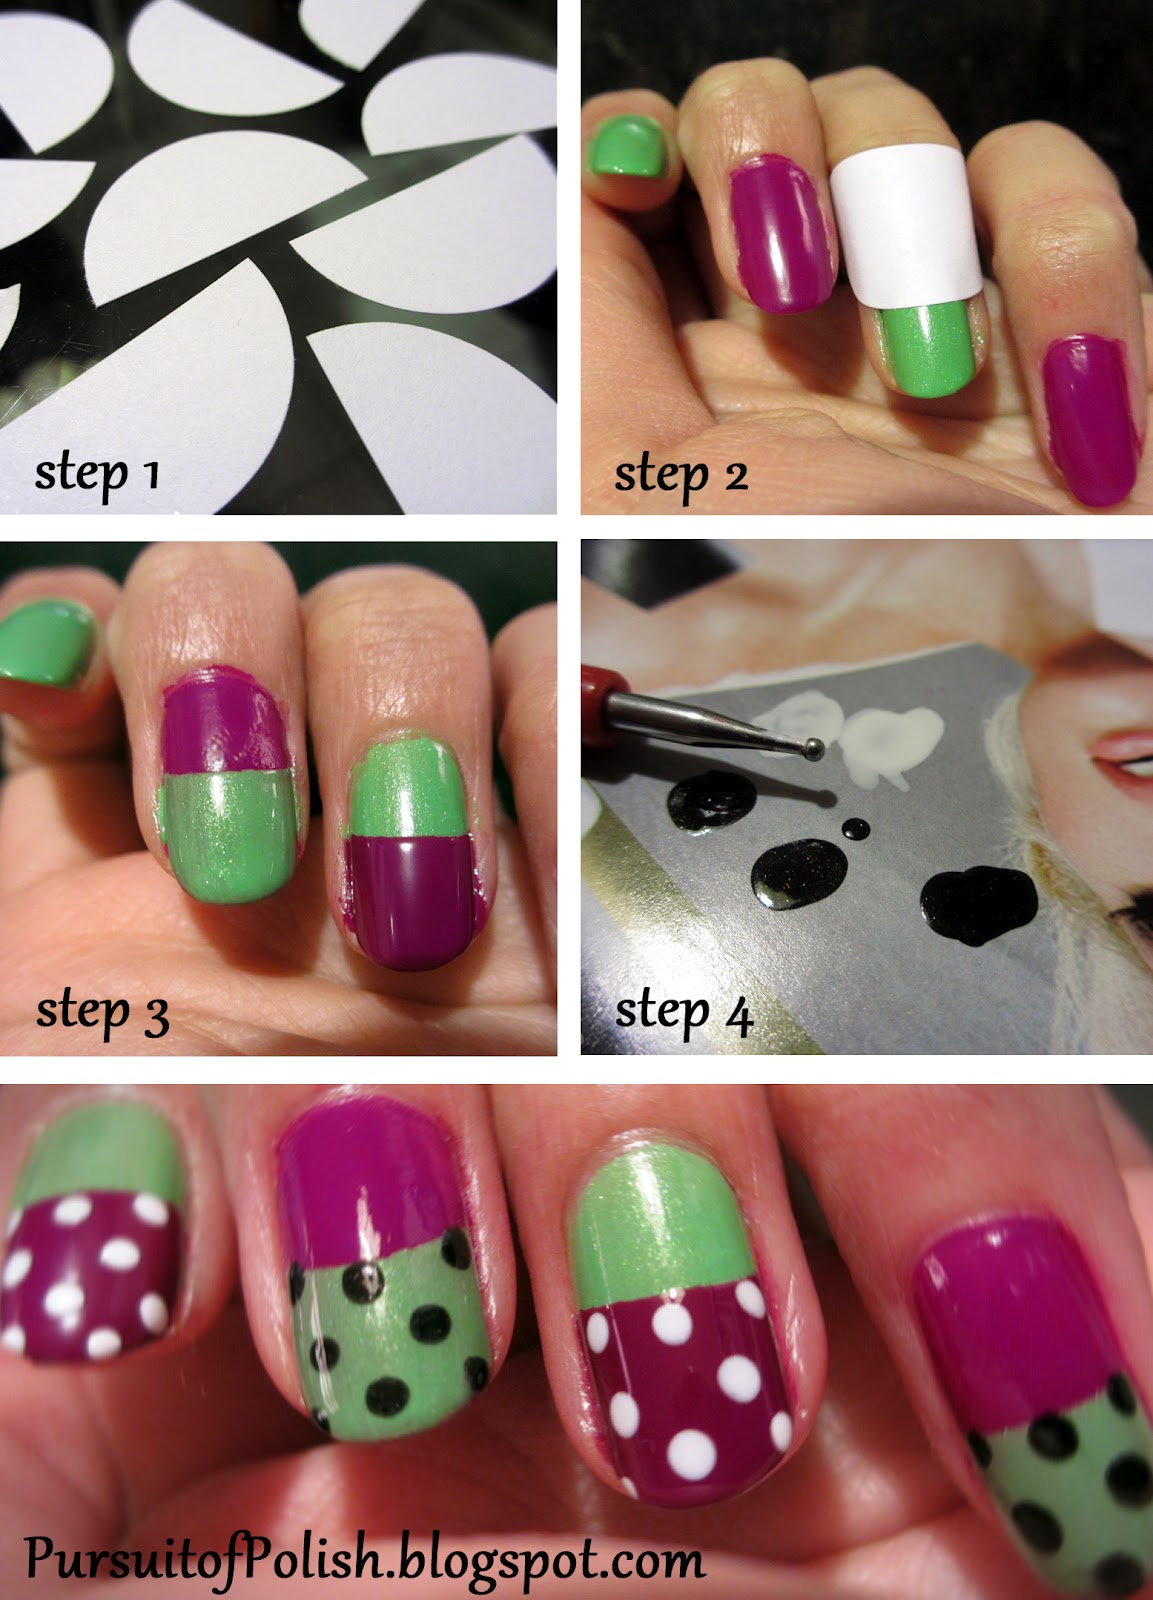 Nail designs with tape tutorial ways to make nail designs using view images nail tutorials with tape viewing gallery prinsesfo Choice Image